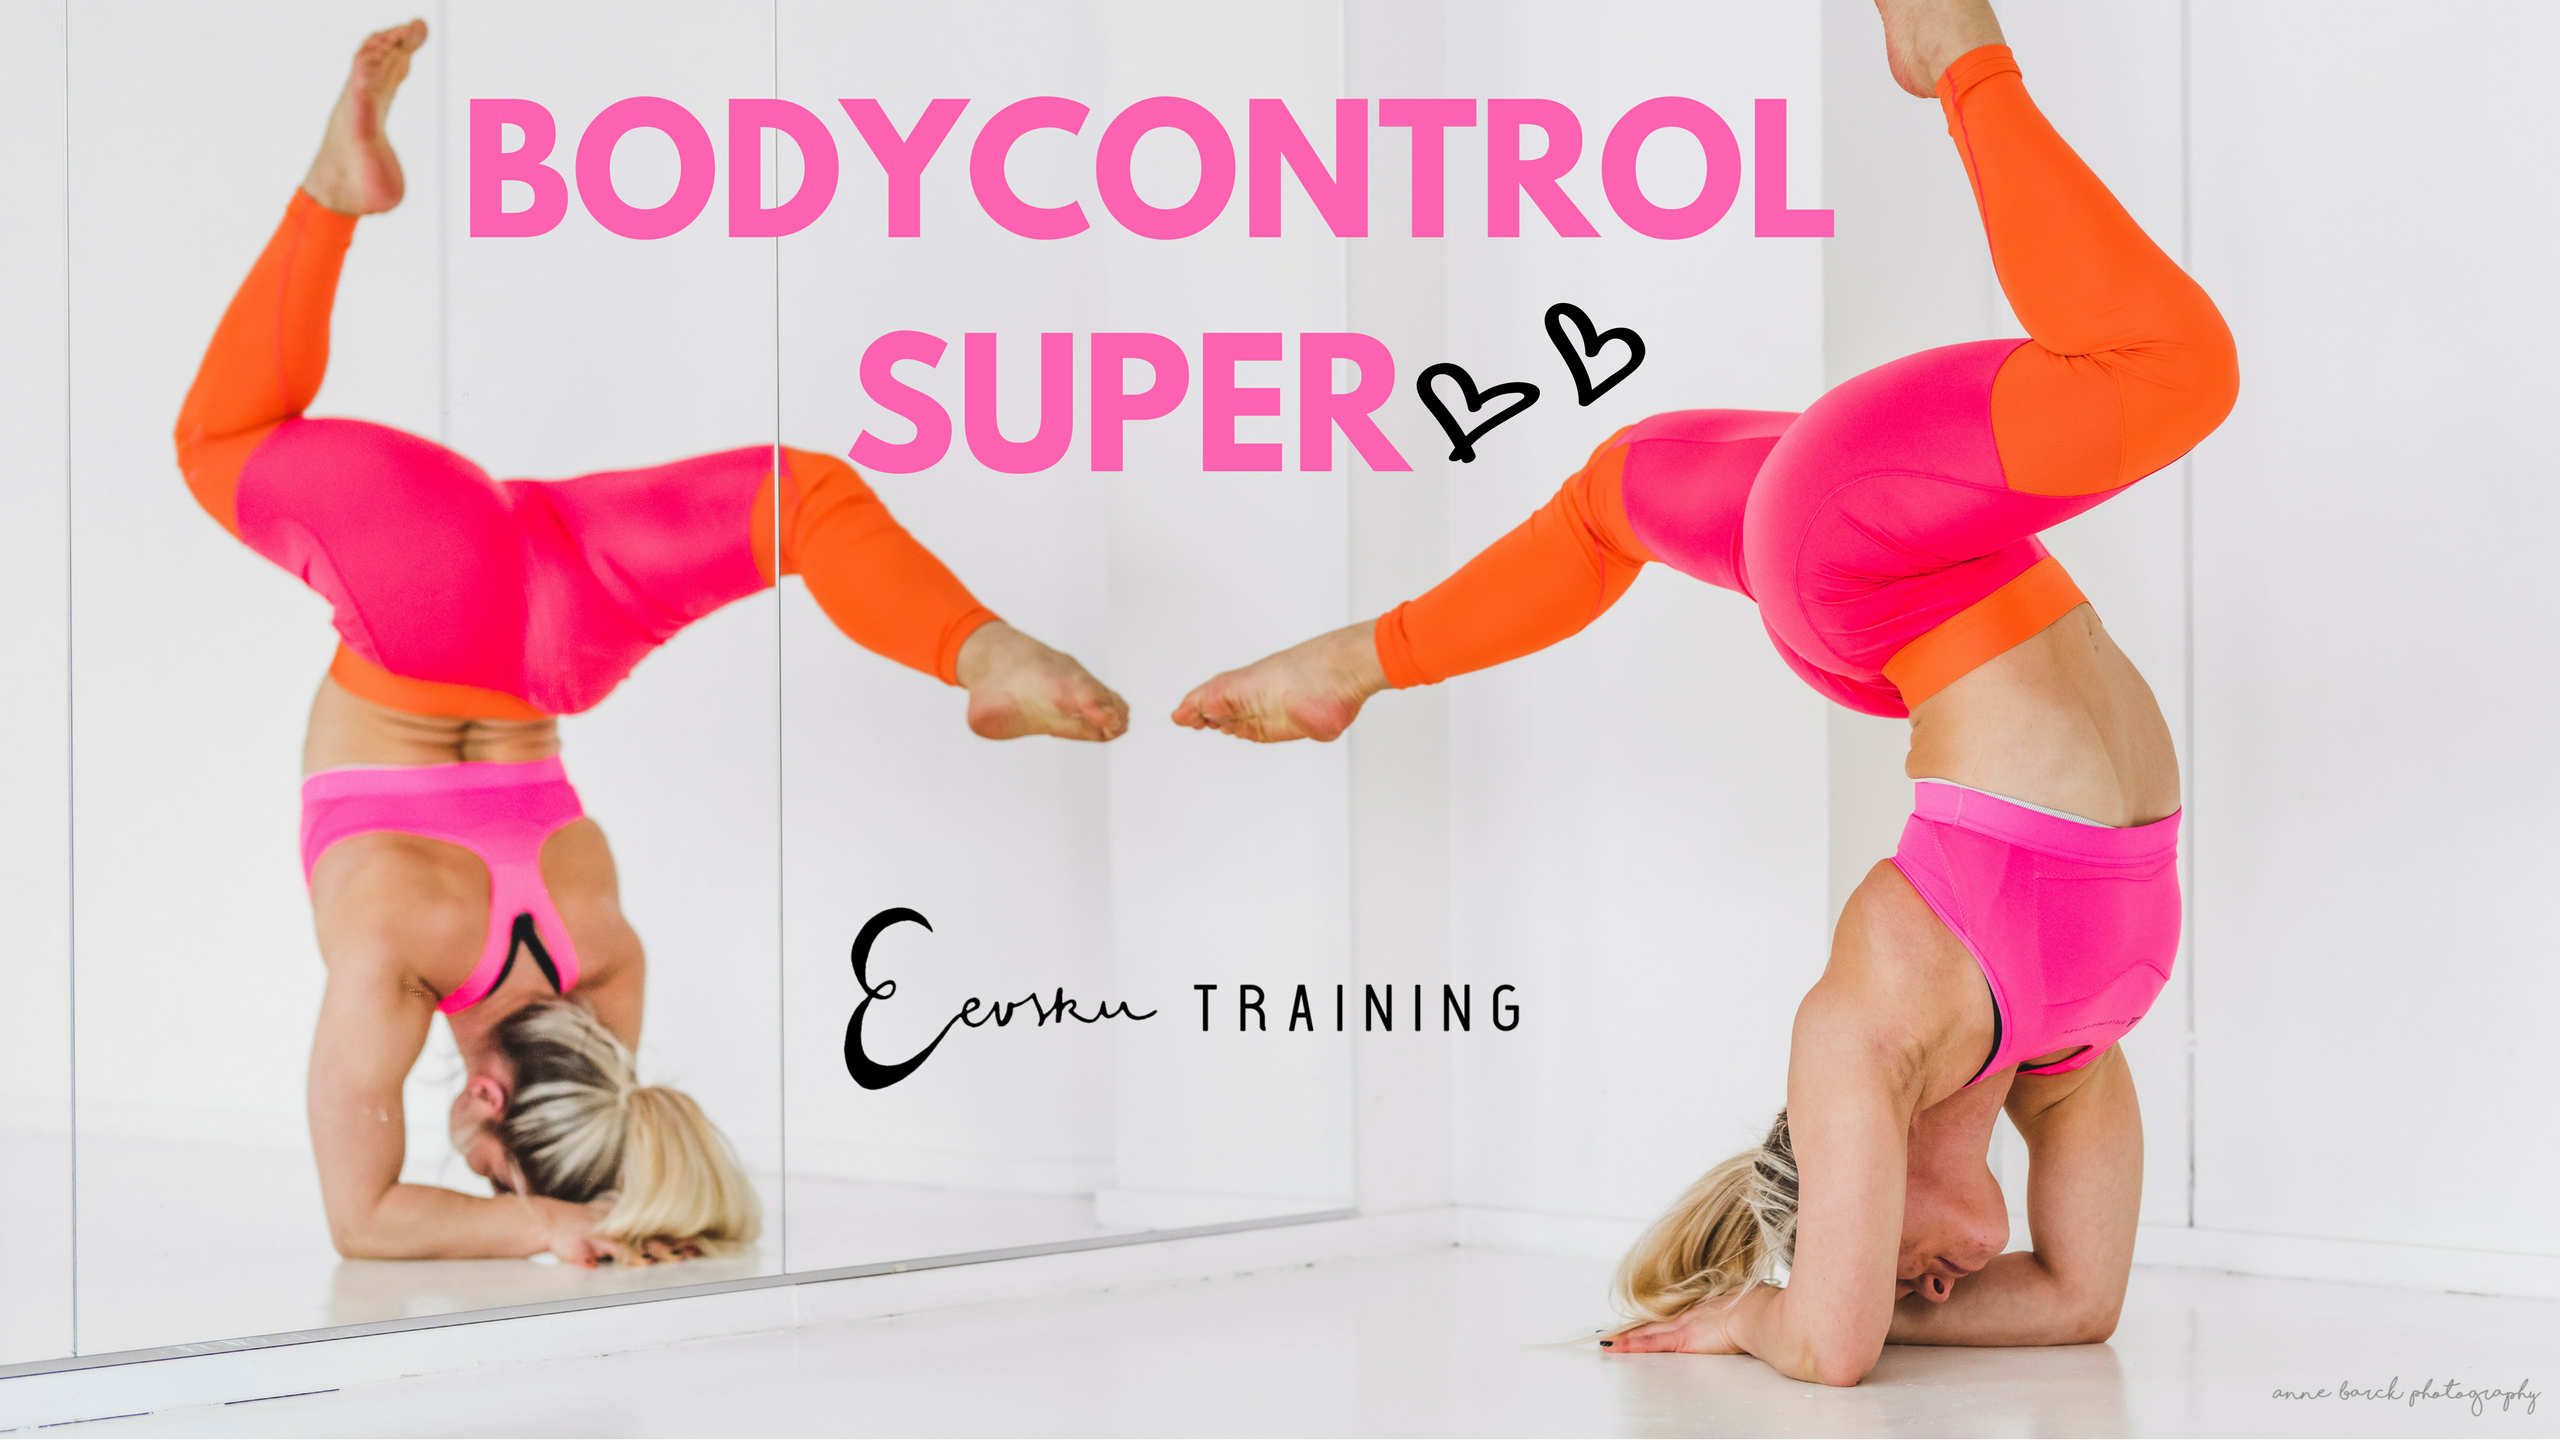 Bodycontrol Super Eevsku training